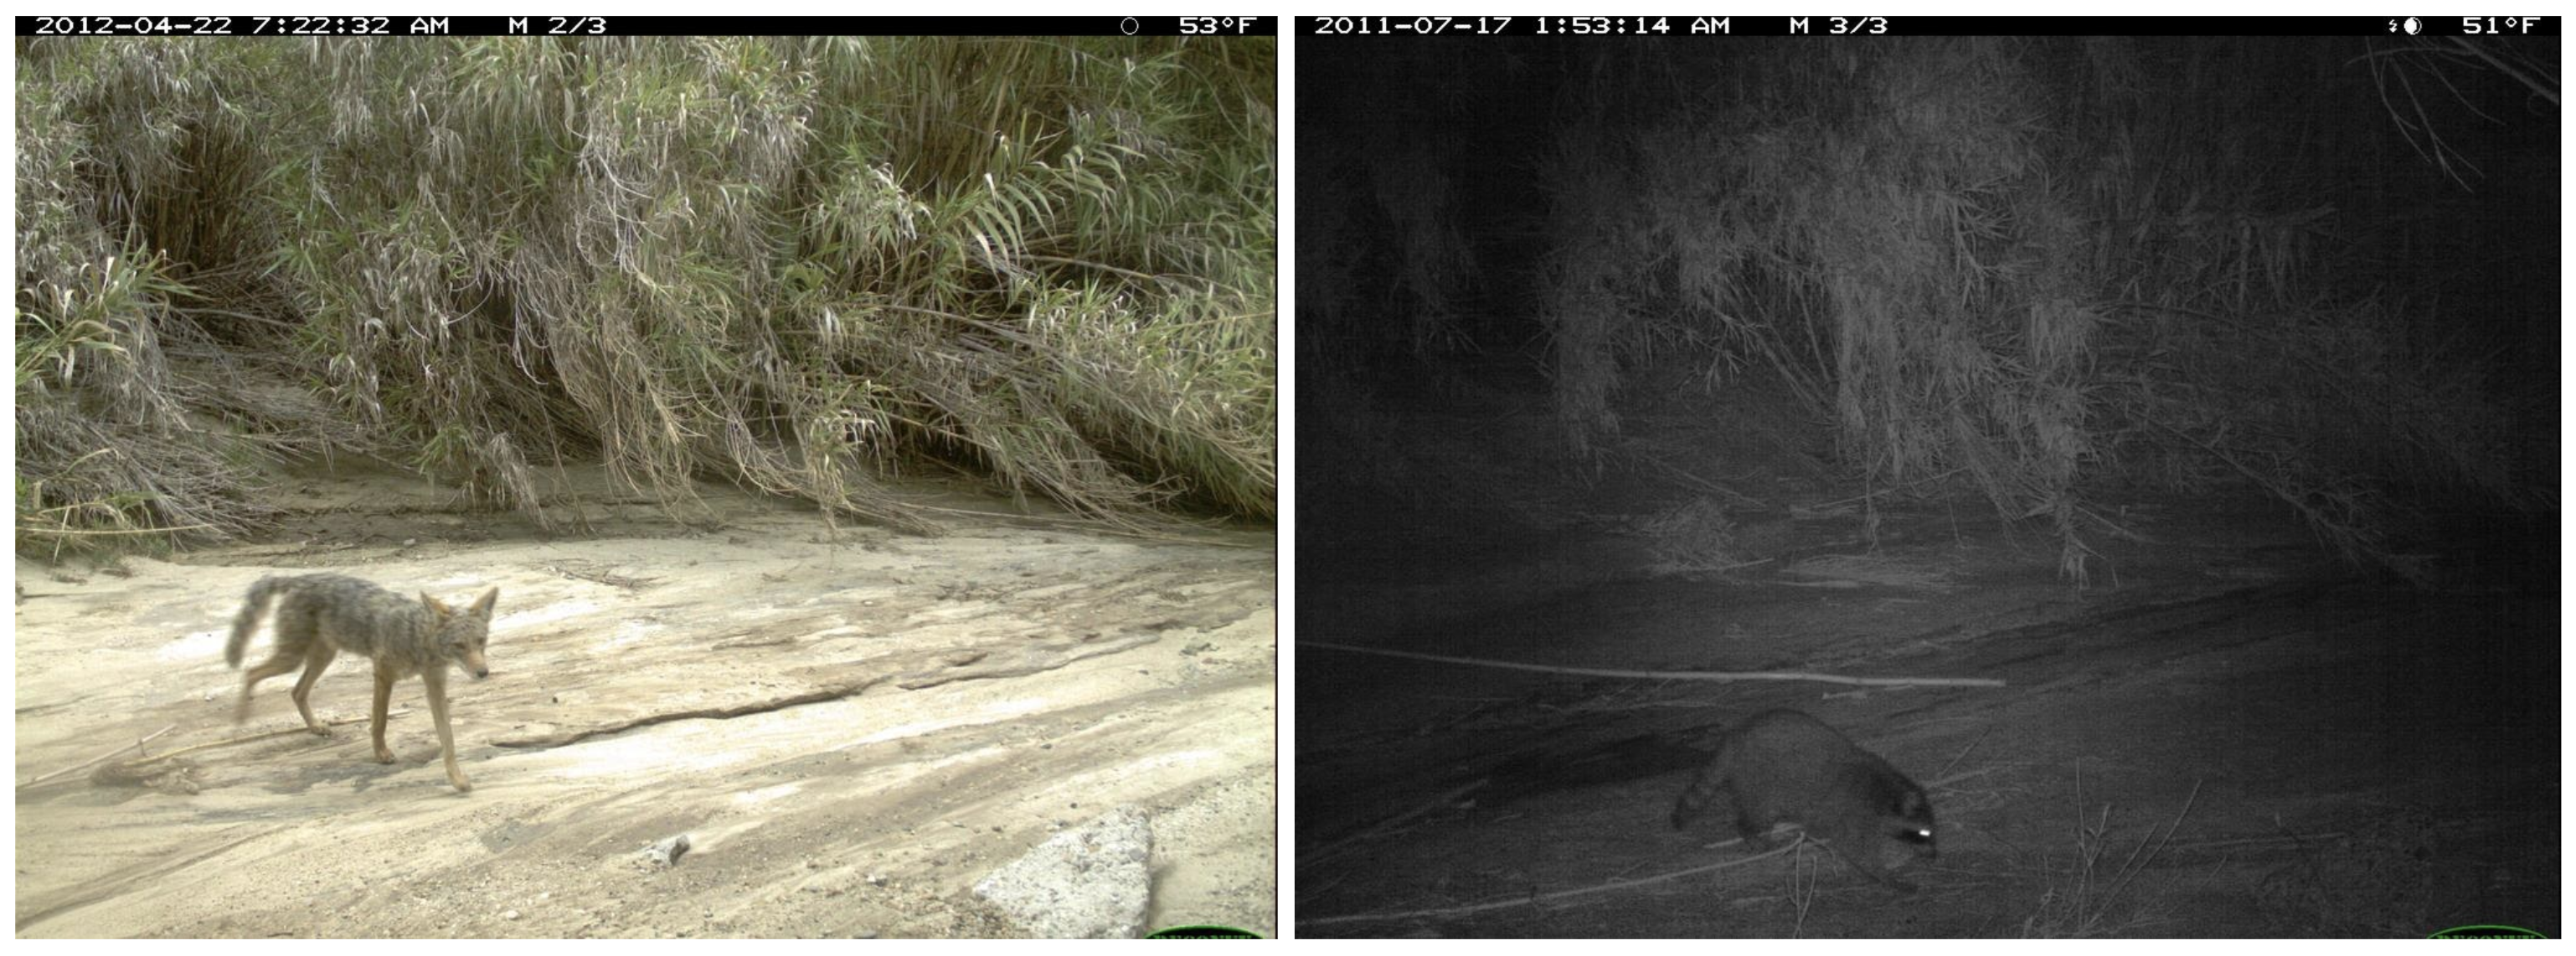 Left, a coyote in its natural environment. Right, a raccoon in the same location at night. Image credit: The iWildCam 2019 Challenge Dataset, used under the Community Data License Agreement.